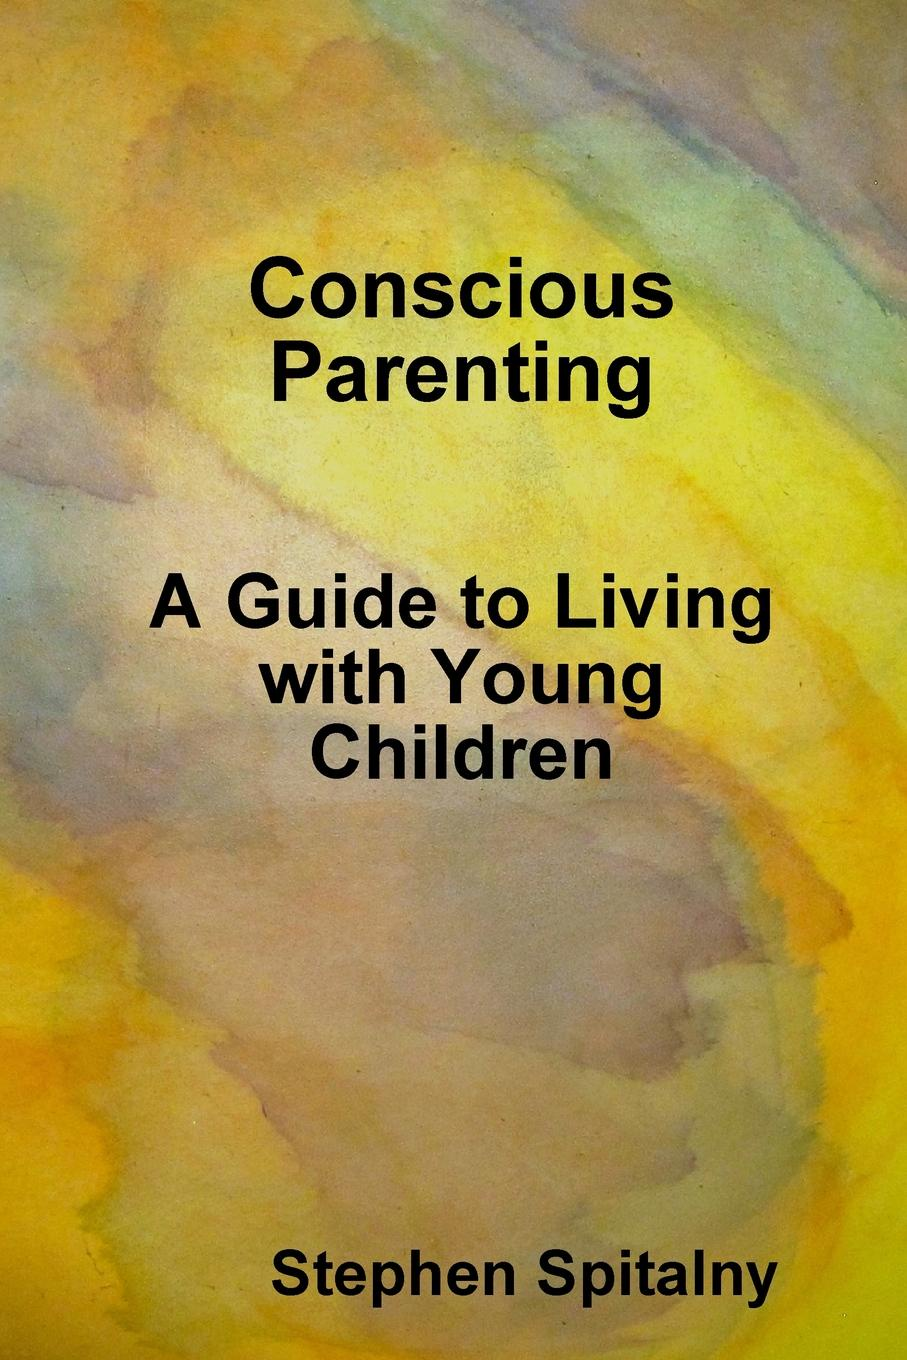 Stephen Spitalny Conscious Parenting. A Guide to Living with Young Children fly–fishing with children – a guide for parents